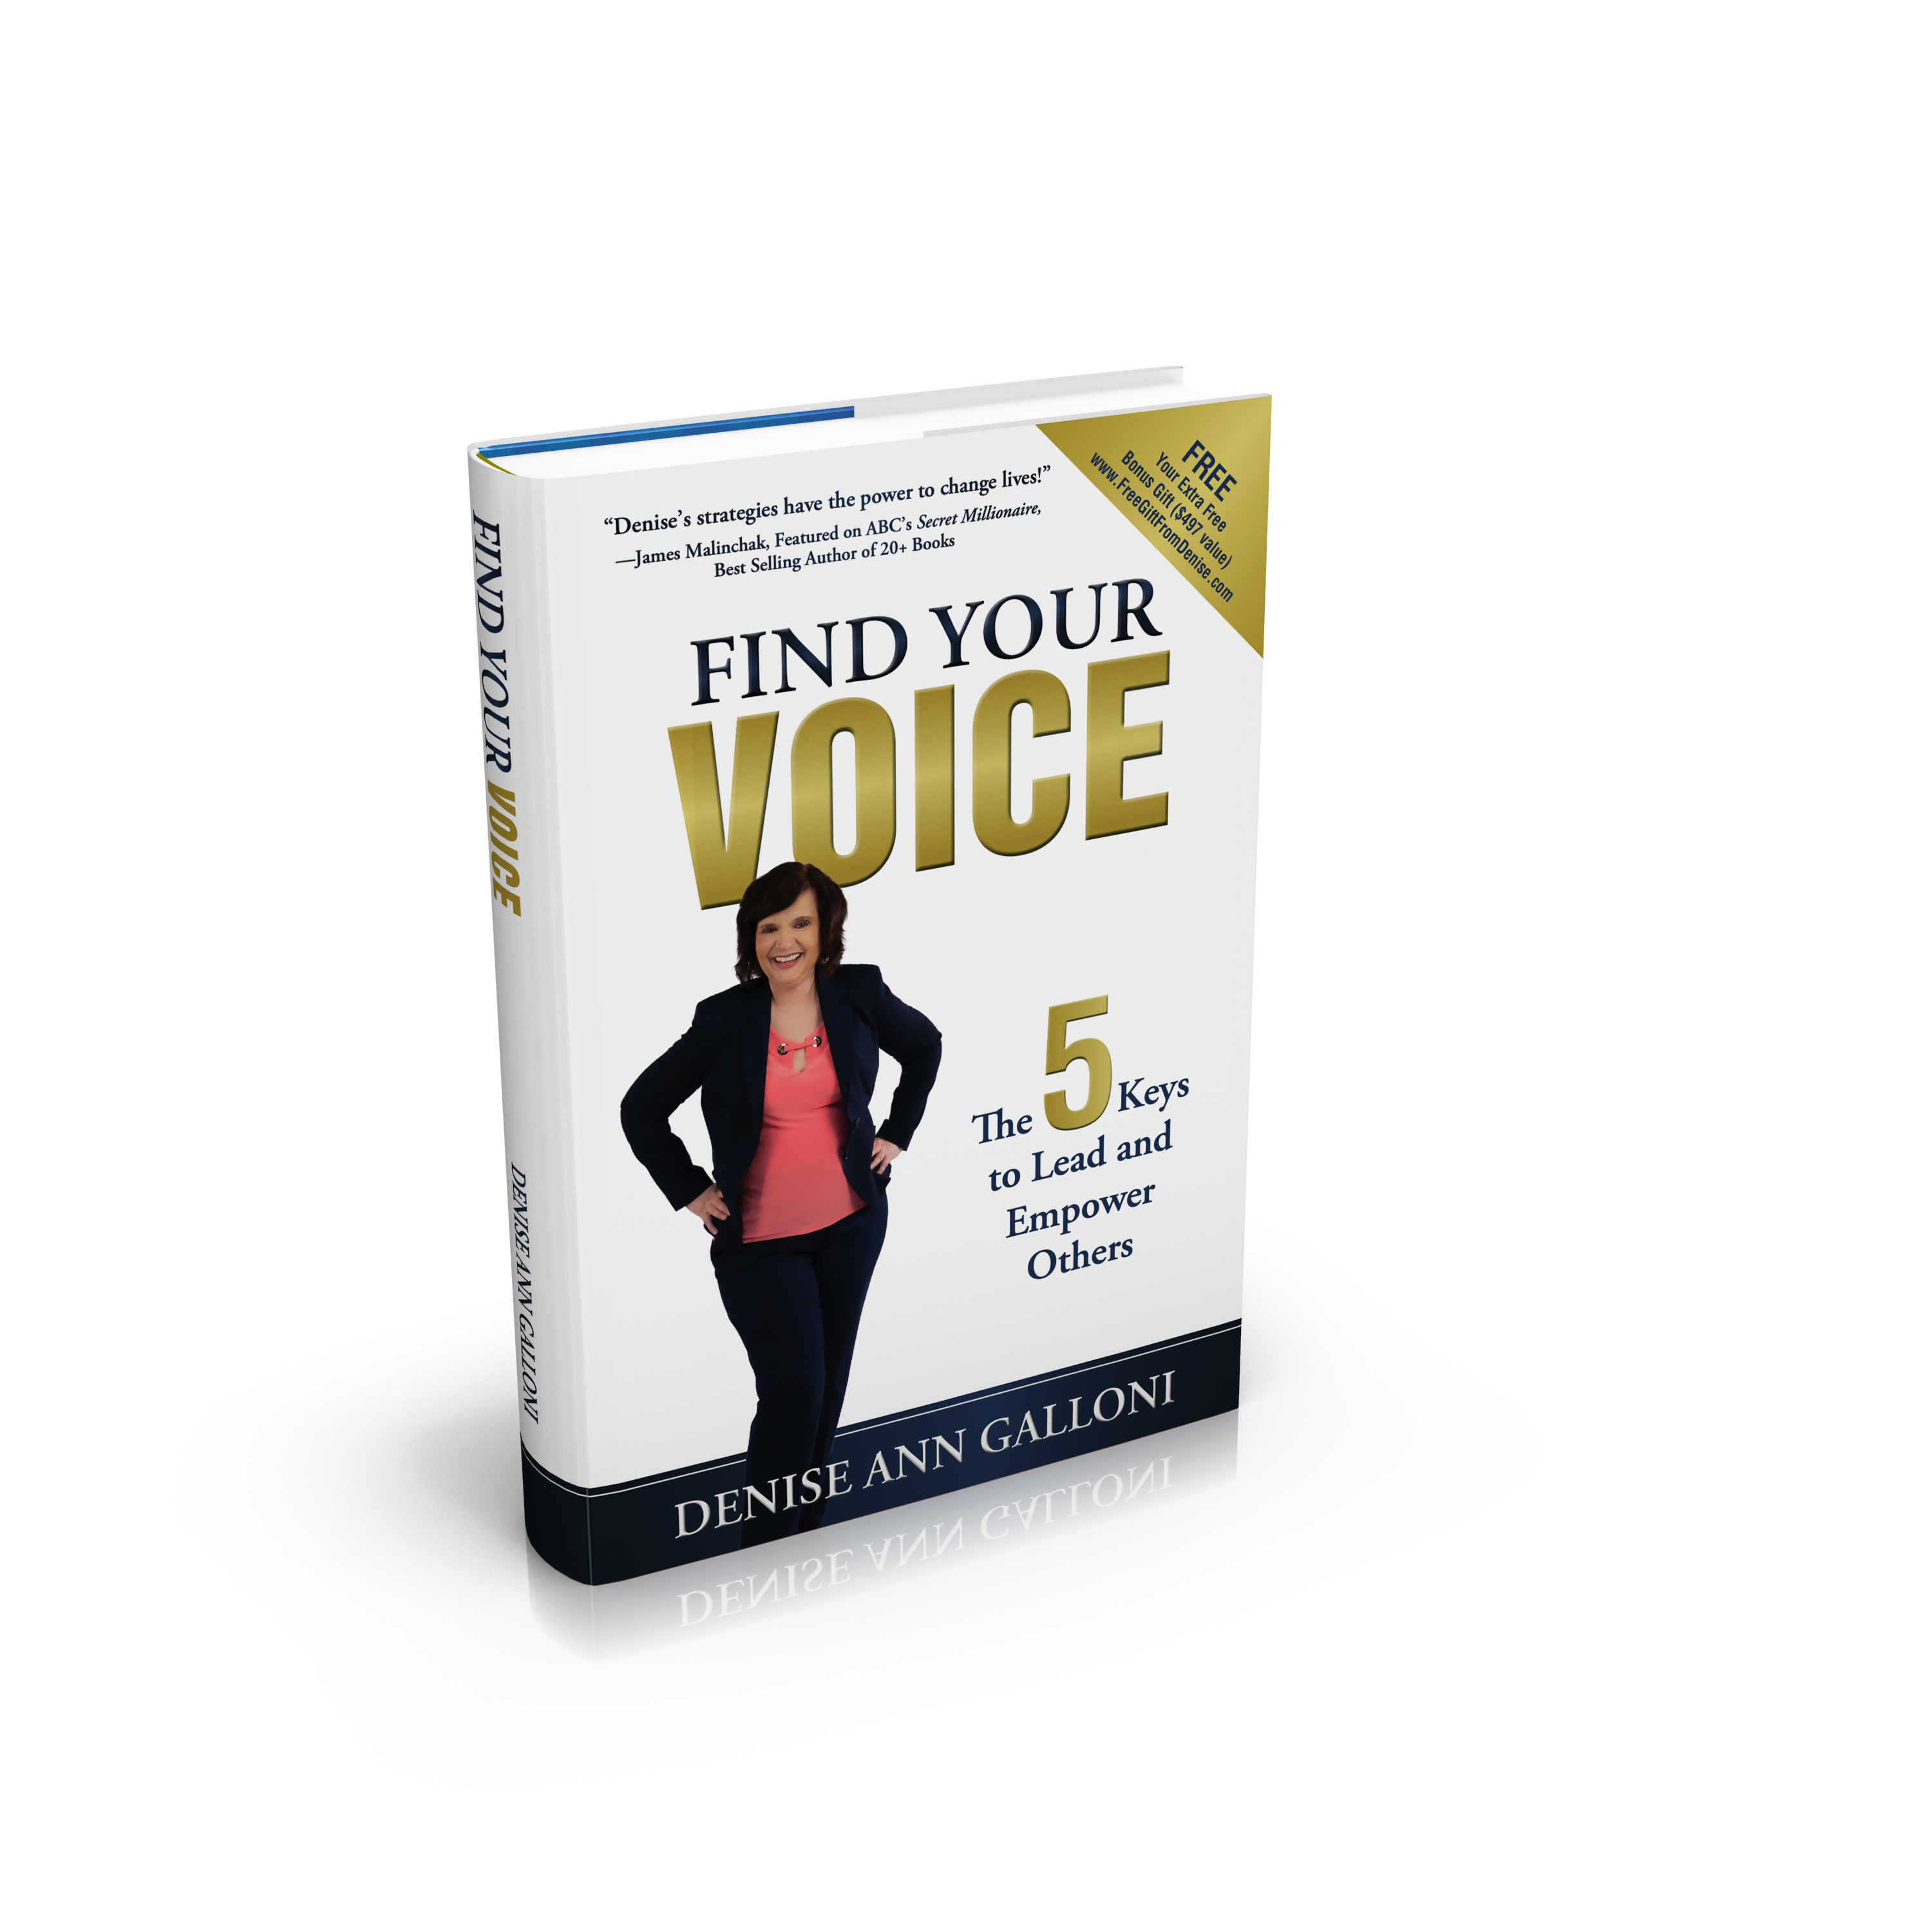 Find Your Voice by Denise Ann Galloni